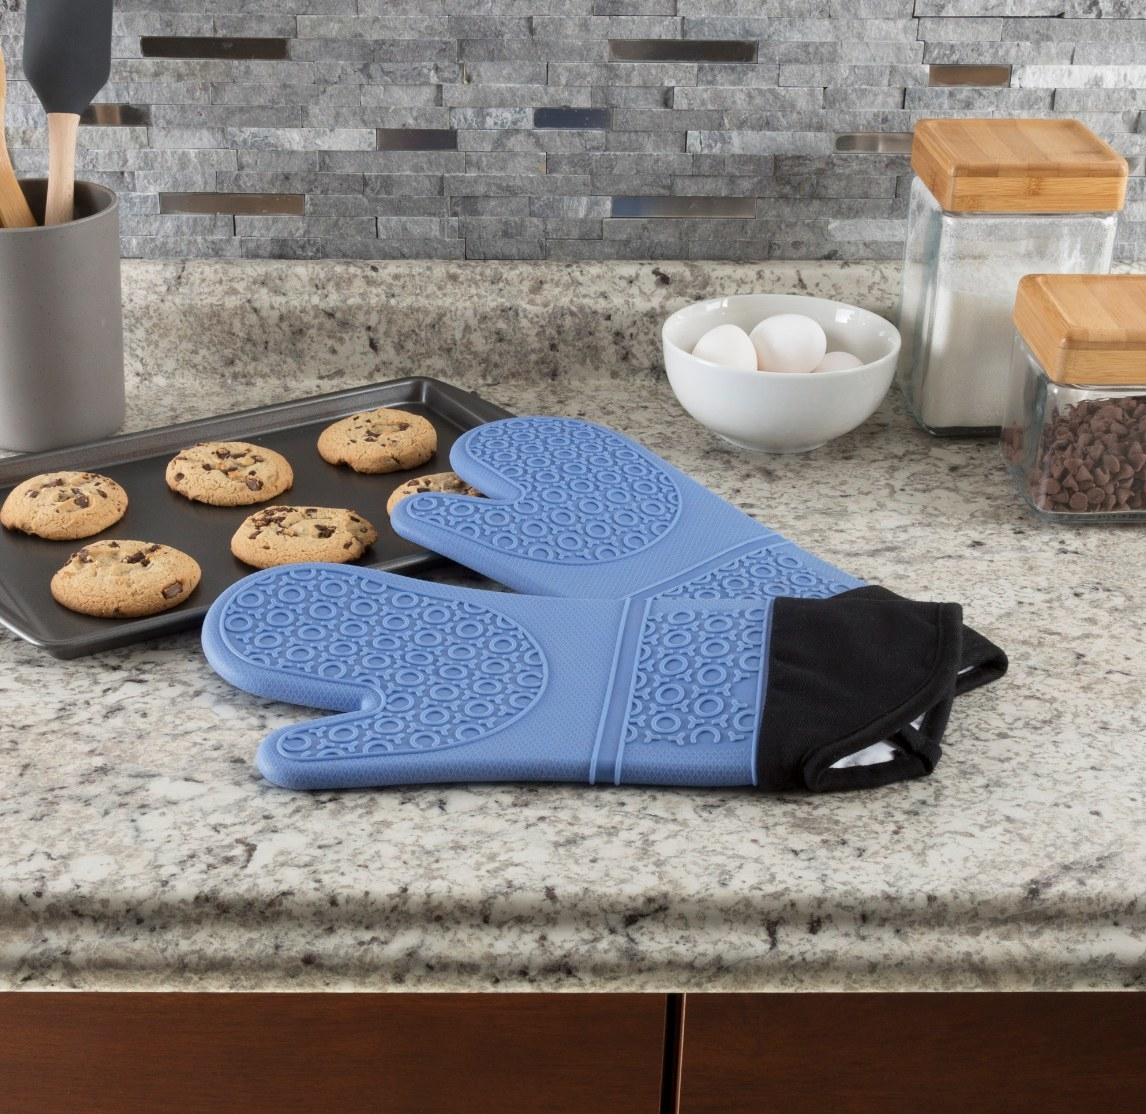 The set of silicone oven mitts